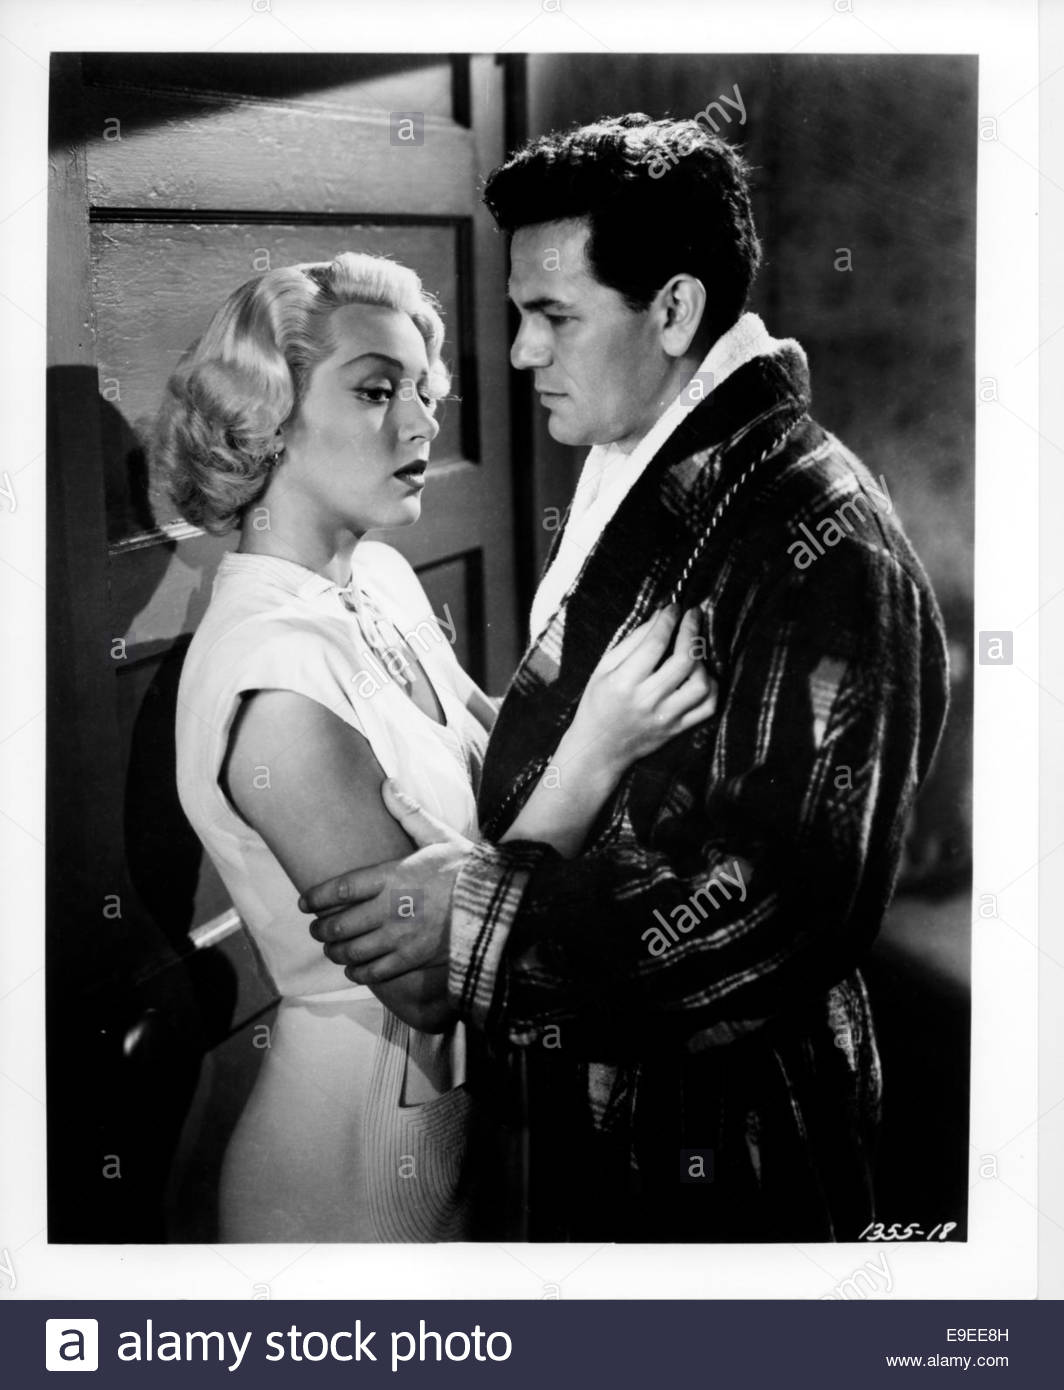 THE POSTMAN ALWAYS RINGS TWICE (1946) - LANA TURNER AND JOHN GARFIELD. - Stock Image